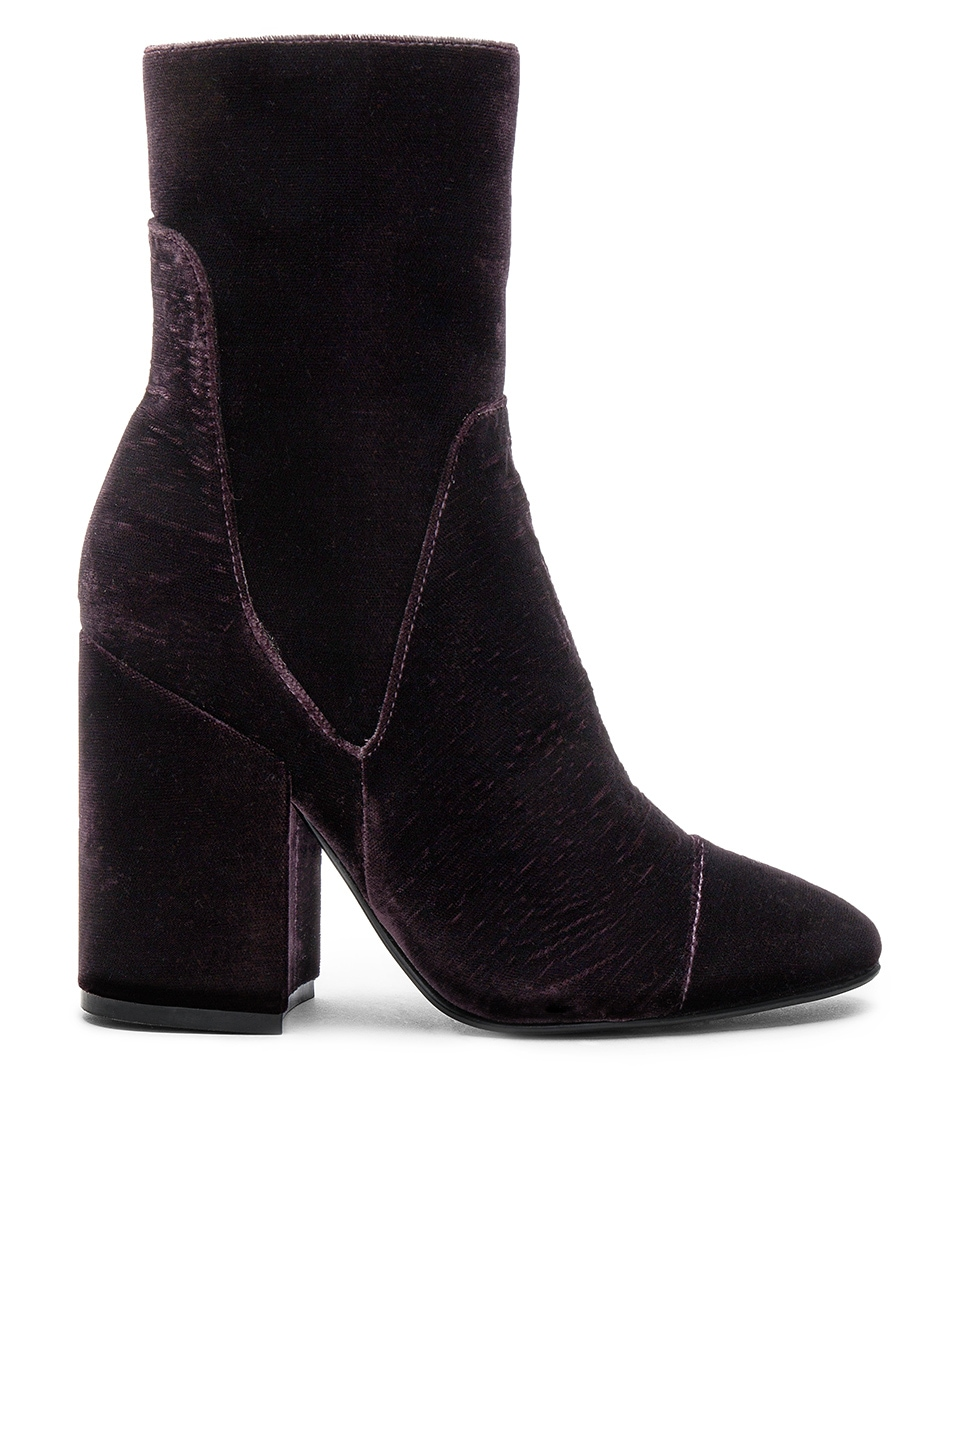 KENDALL + KYLIE Brooke Bootie in Prugna